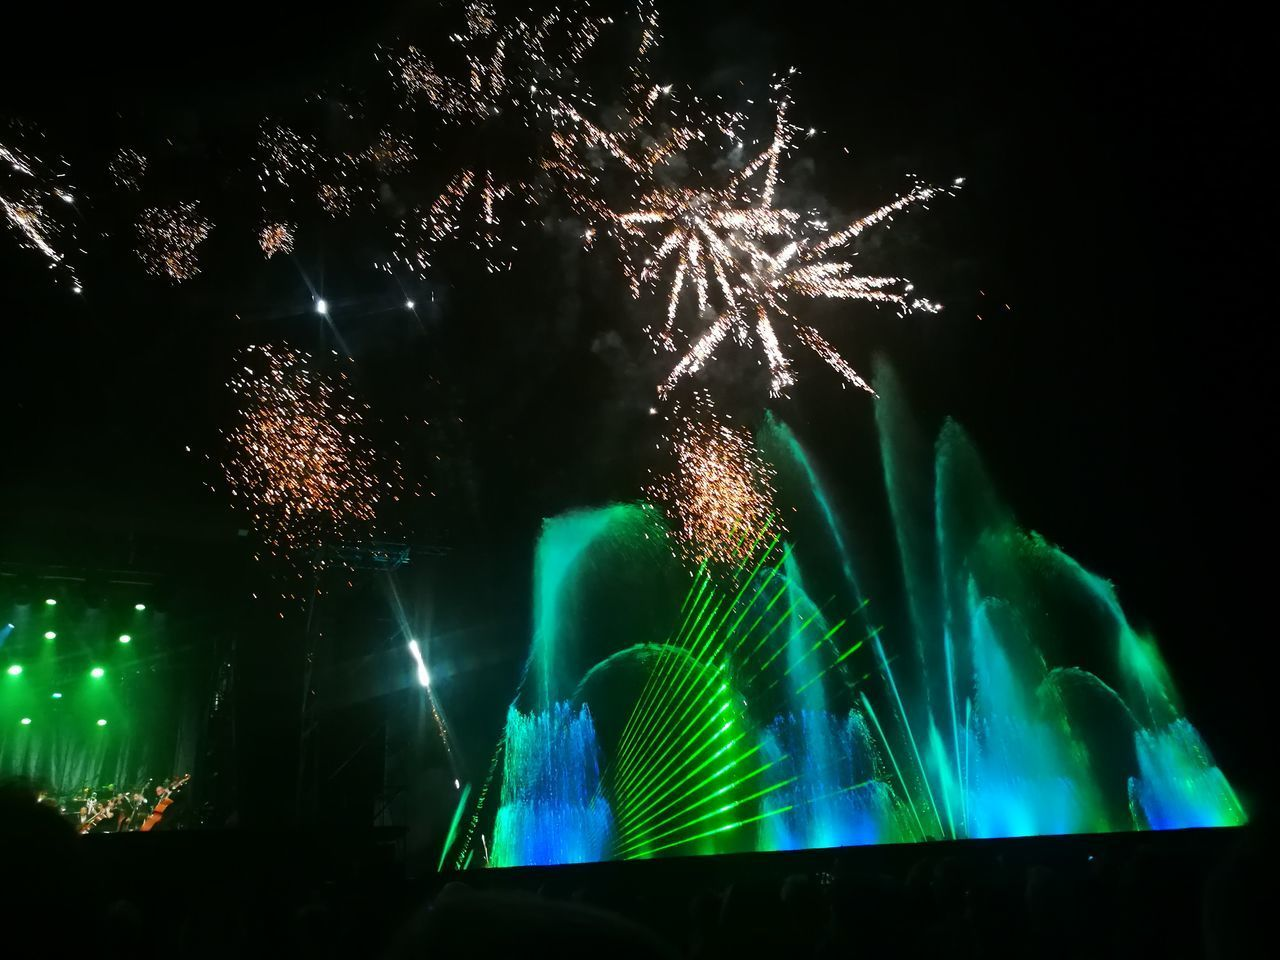 Night Arts Culture And Entertainment Illuminated Green Color Celebration Outdoors Water Projection On Water Wall Lasershow Water Fountain Jet D'eau Projection Sur Mur D'eau Festival Feu D'artifices